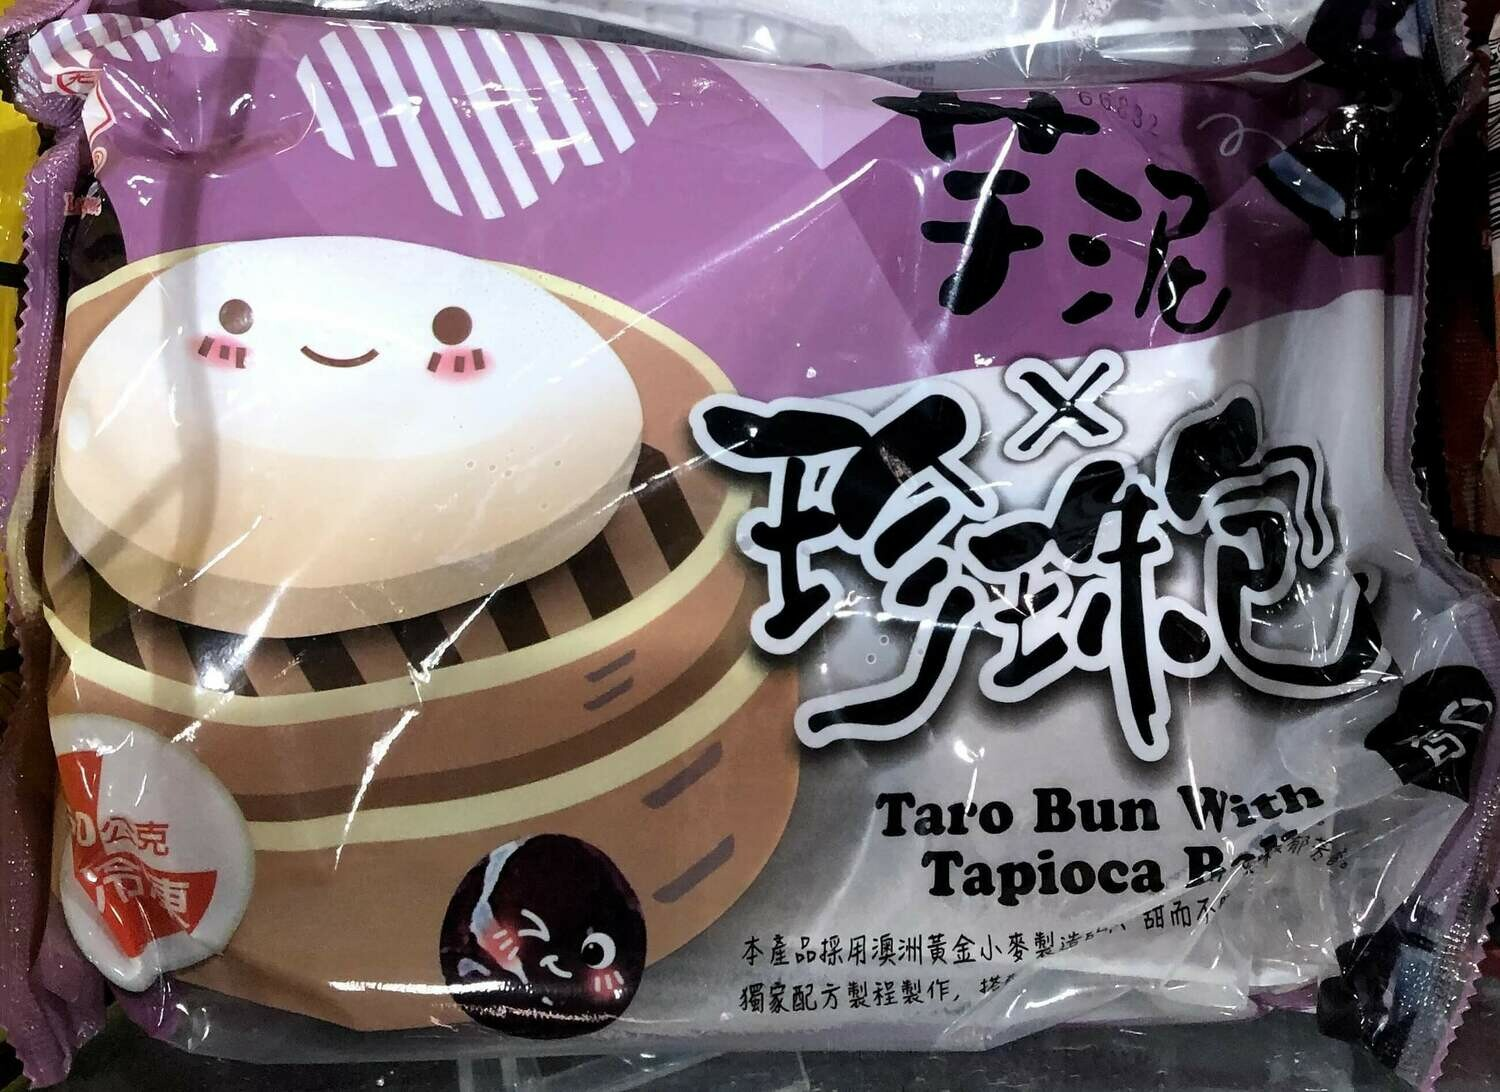 【RBF】LamShengKee Taro Bun With Tapioca Ball 林生记 芋泥 珍珠包 360g